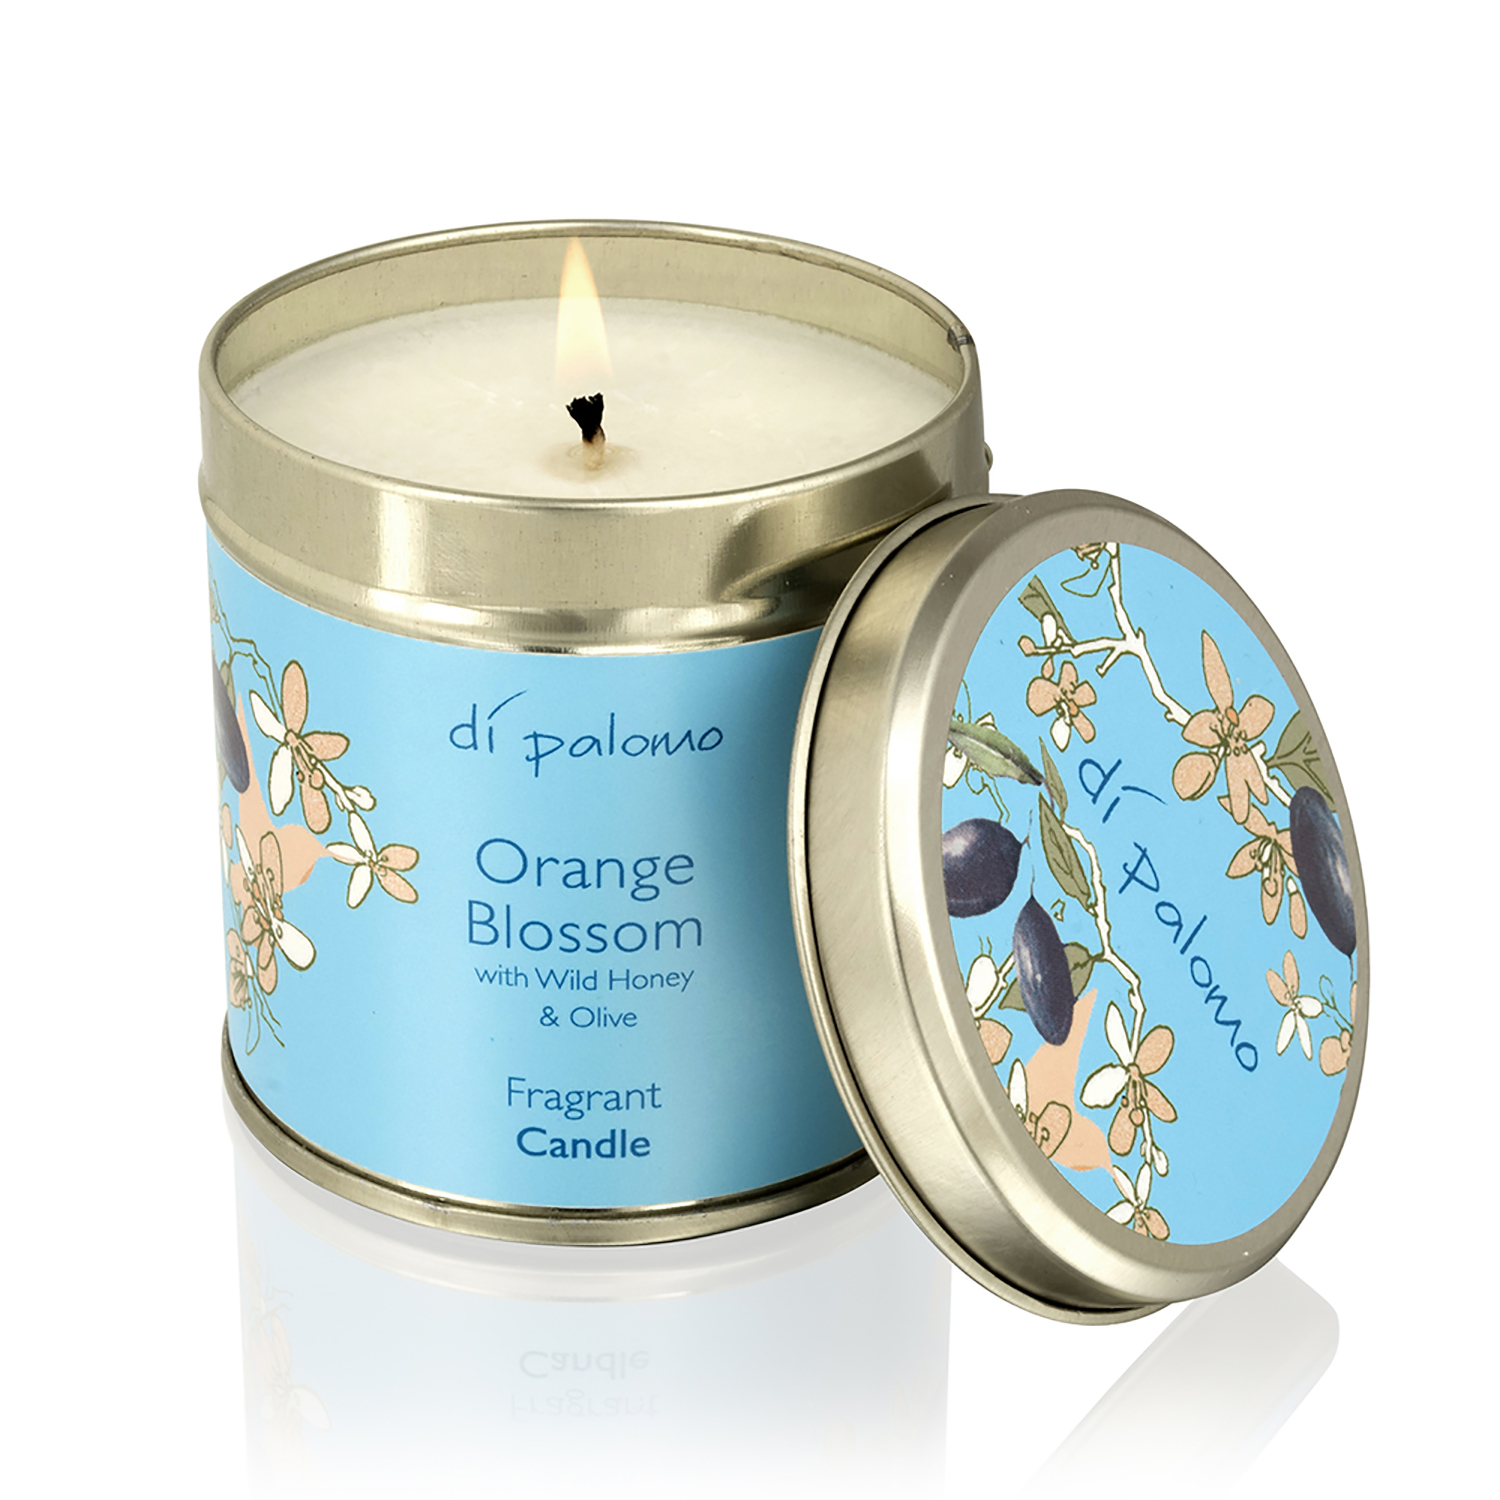 Image of Di Palomo Orange Blossom Fragrant Candle Tin, 200g